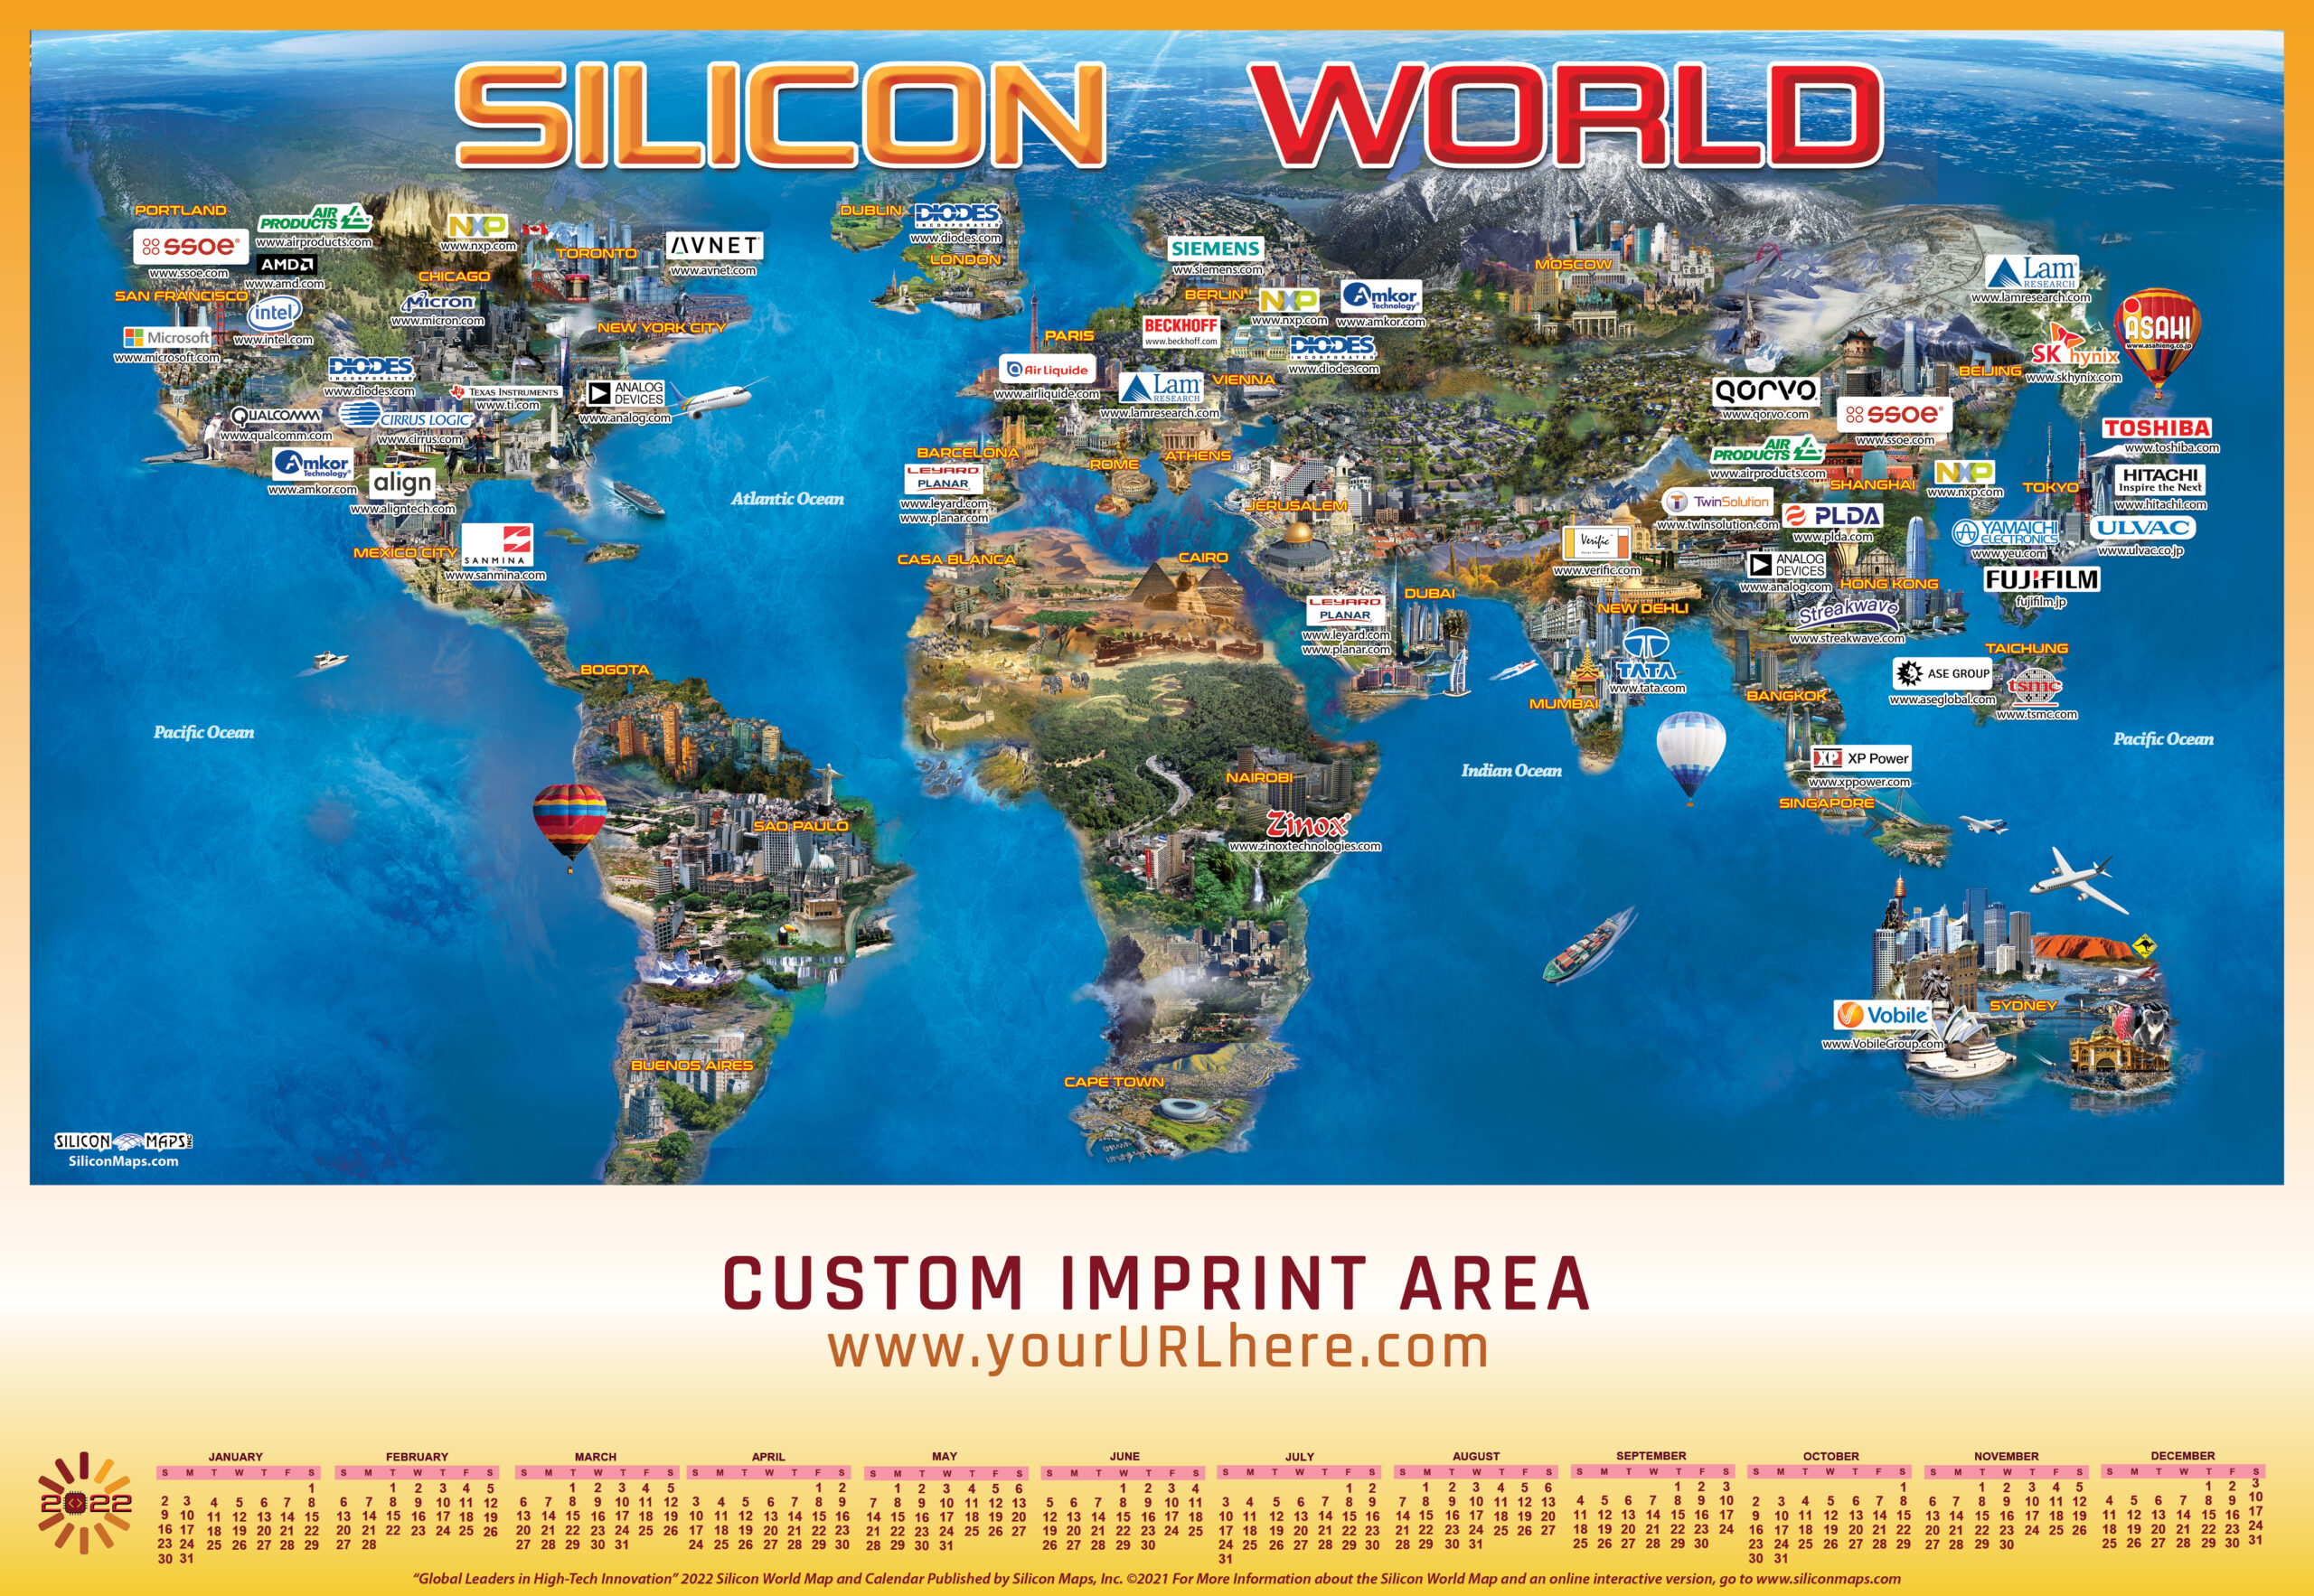 SW22, Silicon World, Tech, Map, Business, Technology, hardware, software, companies,global